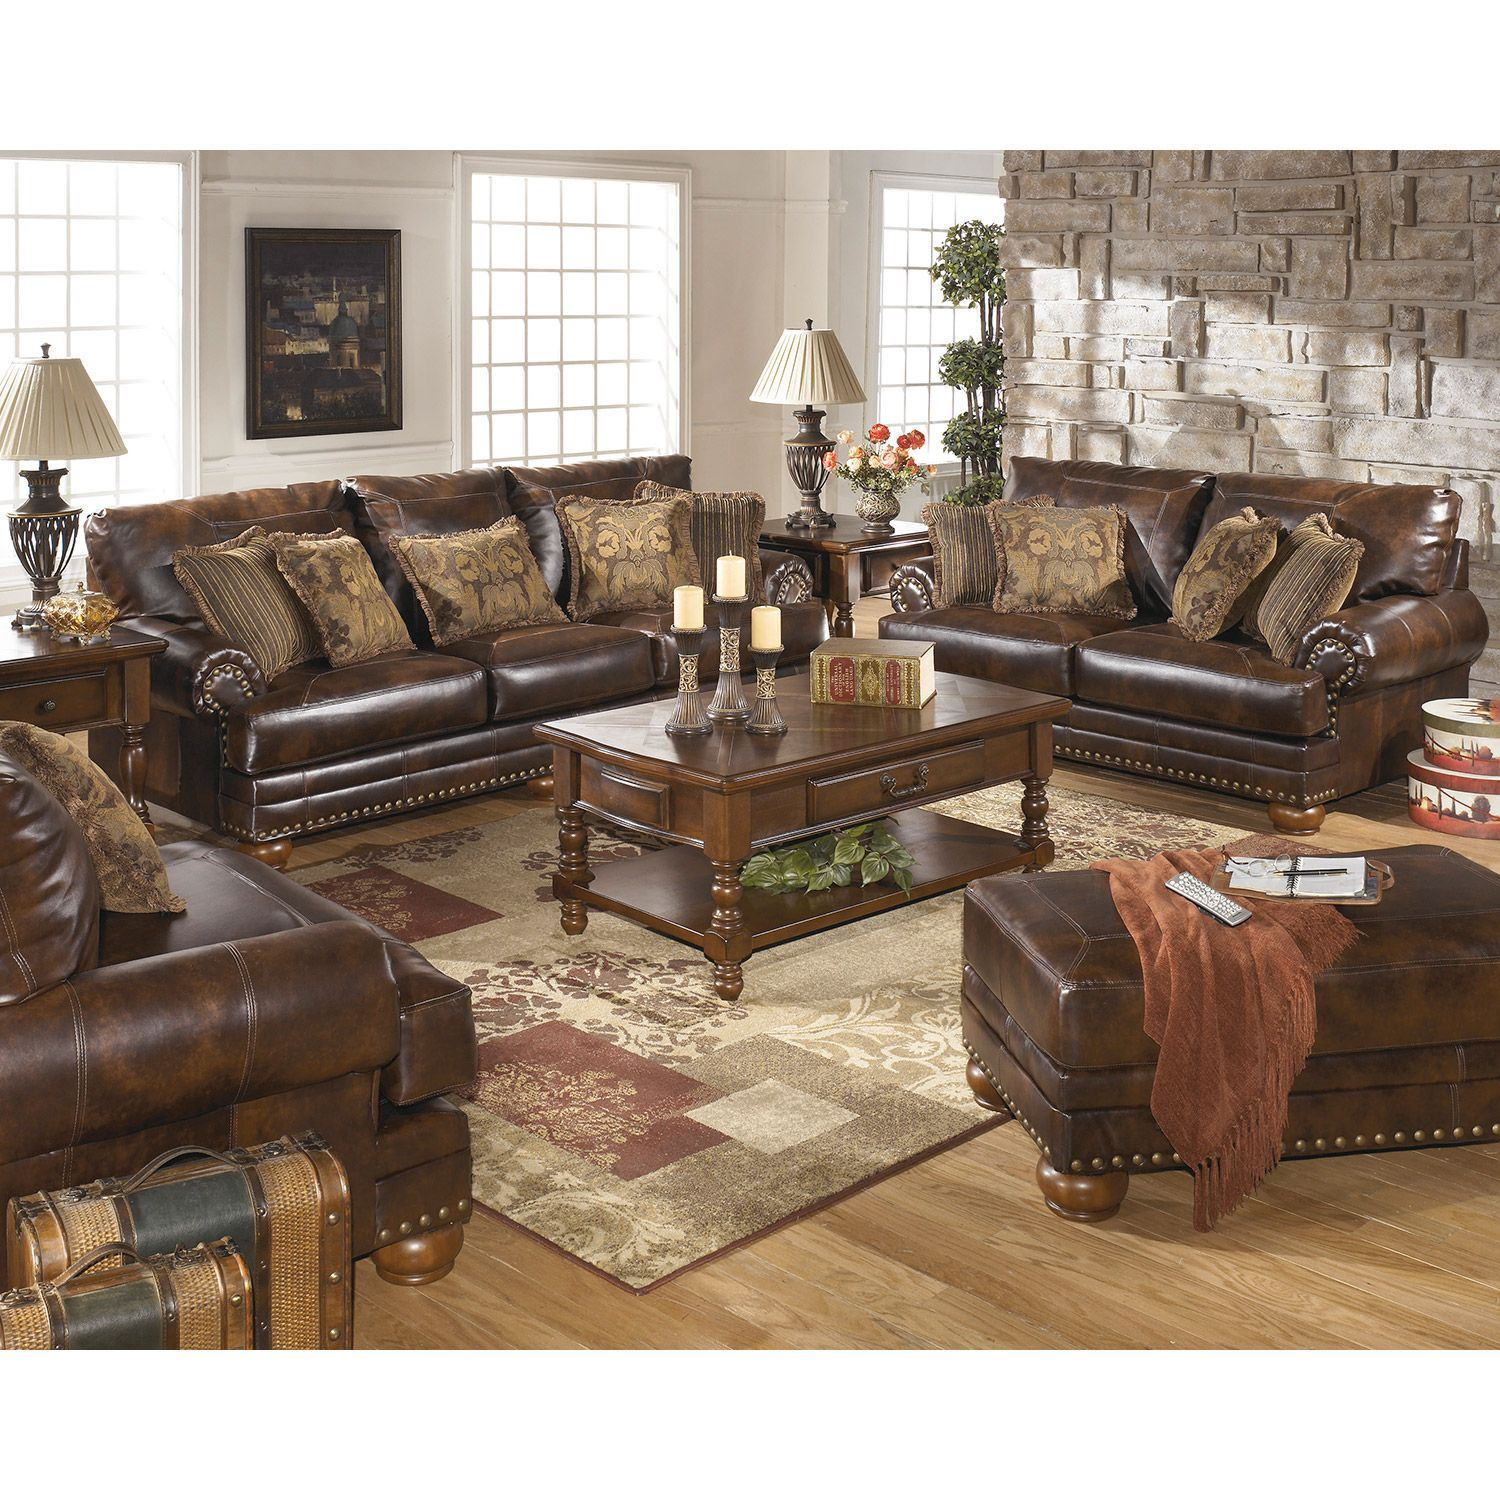 Antique Bonded Leather Loveseat 9920035 Ashley Furniture Afw